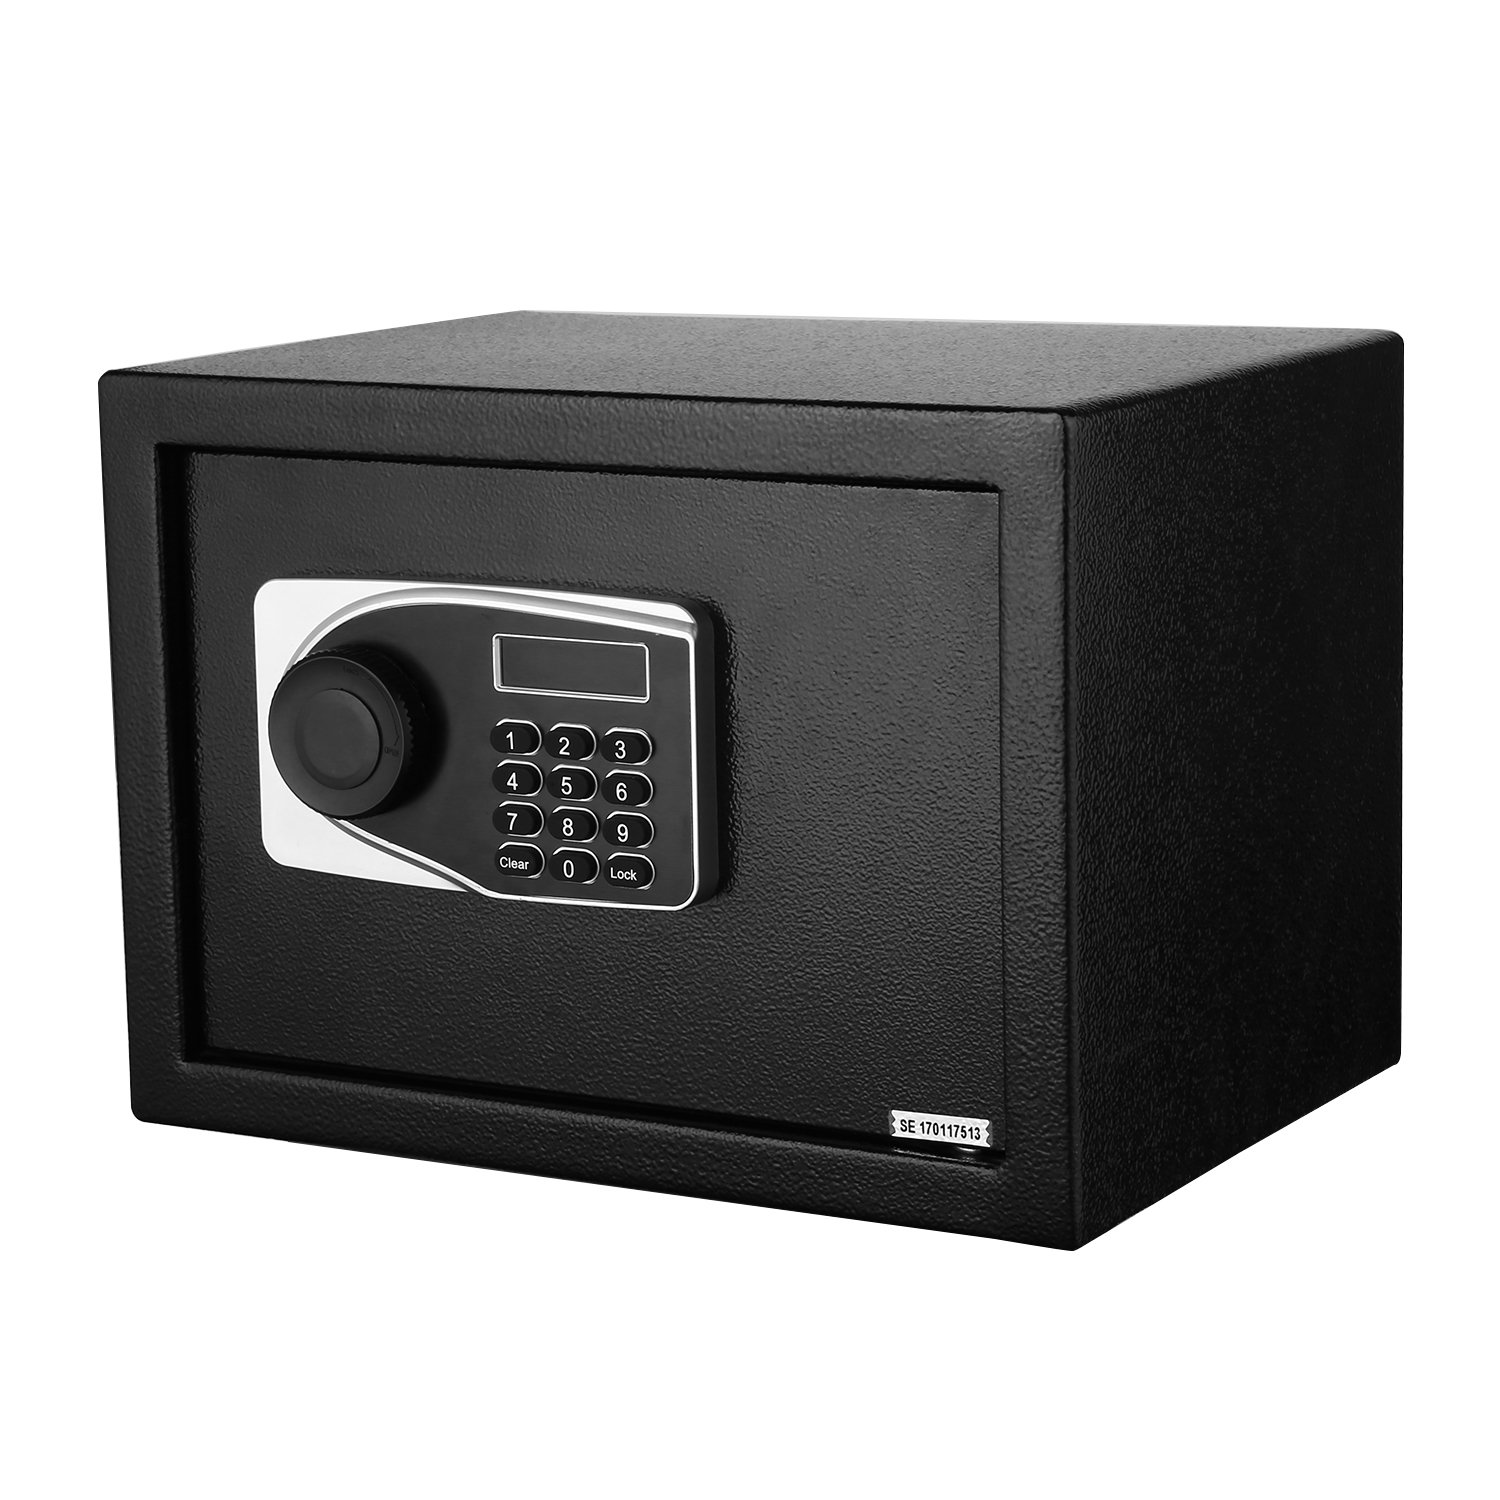 Homevol Home Security Digital Electronic Safe Box Case with LED Screen & Keys,0.5 Cubic Feet,Money Jewelry Valuables Storage Box